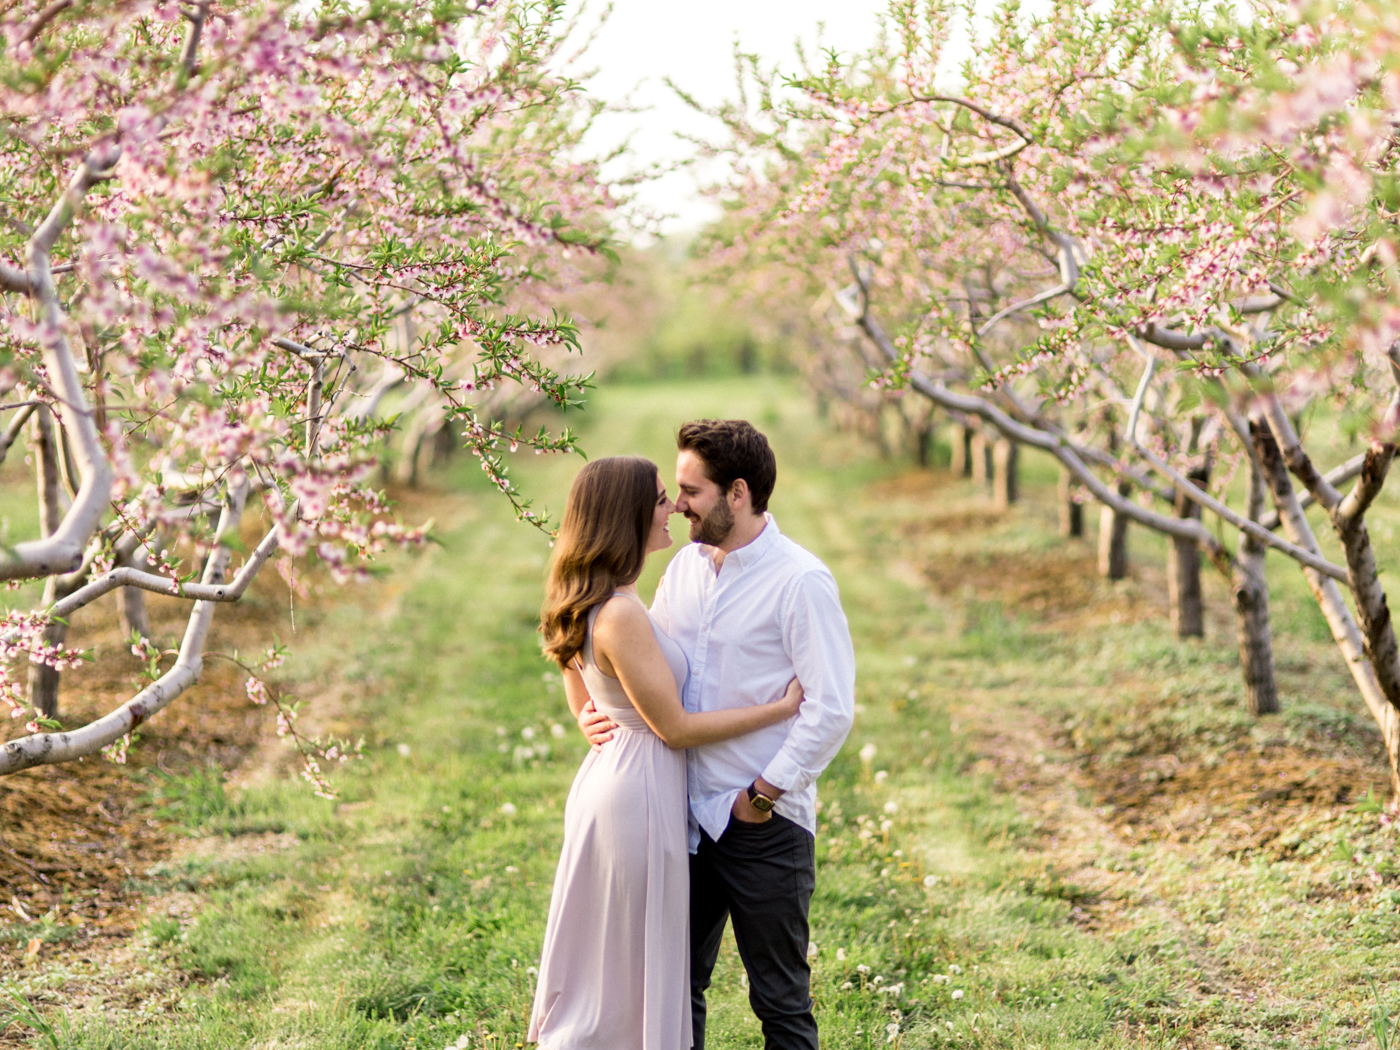 Chris & Heather's Engagement Session in Vineland Ontario Spring Blossoms Trees by Hush Hush Photography & Film Aidan Hennebry - 14.jpg